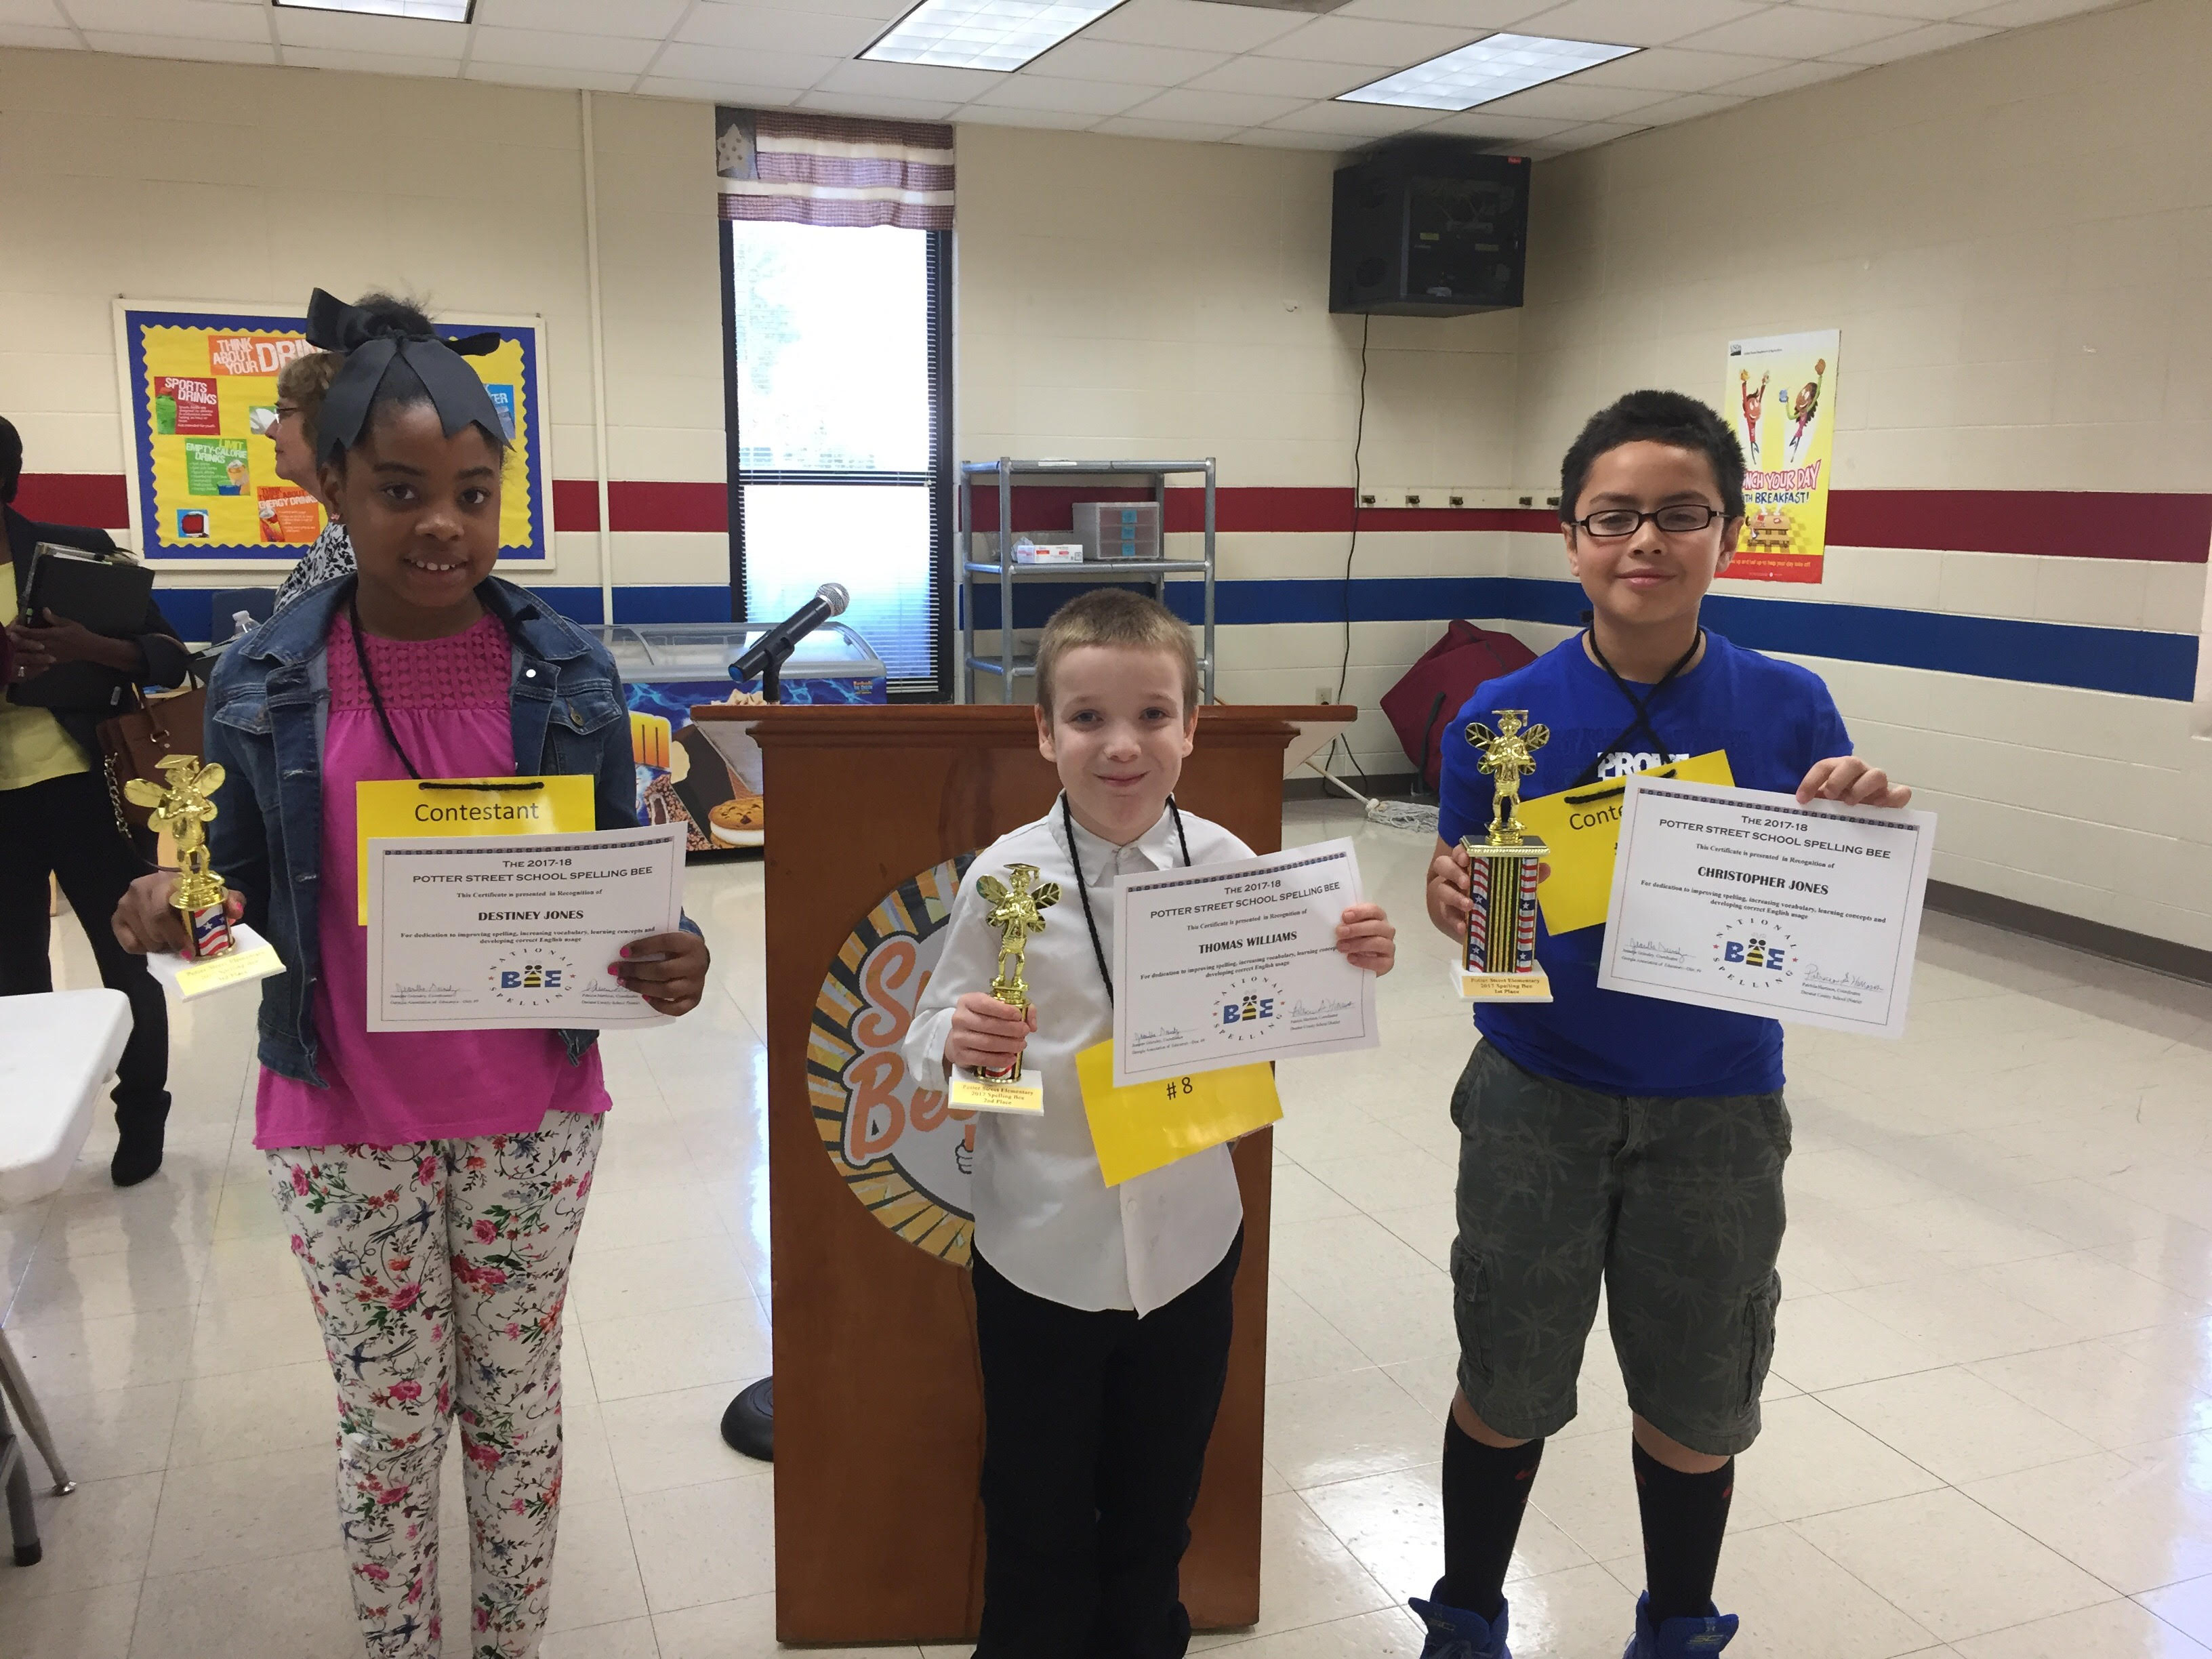 Congratulations to our 4th grade participants at the District Spelling Bee! Destiny Jones, Thomas Williams and Christopher Jones